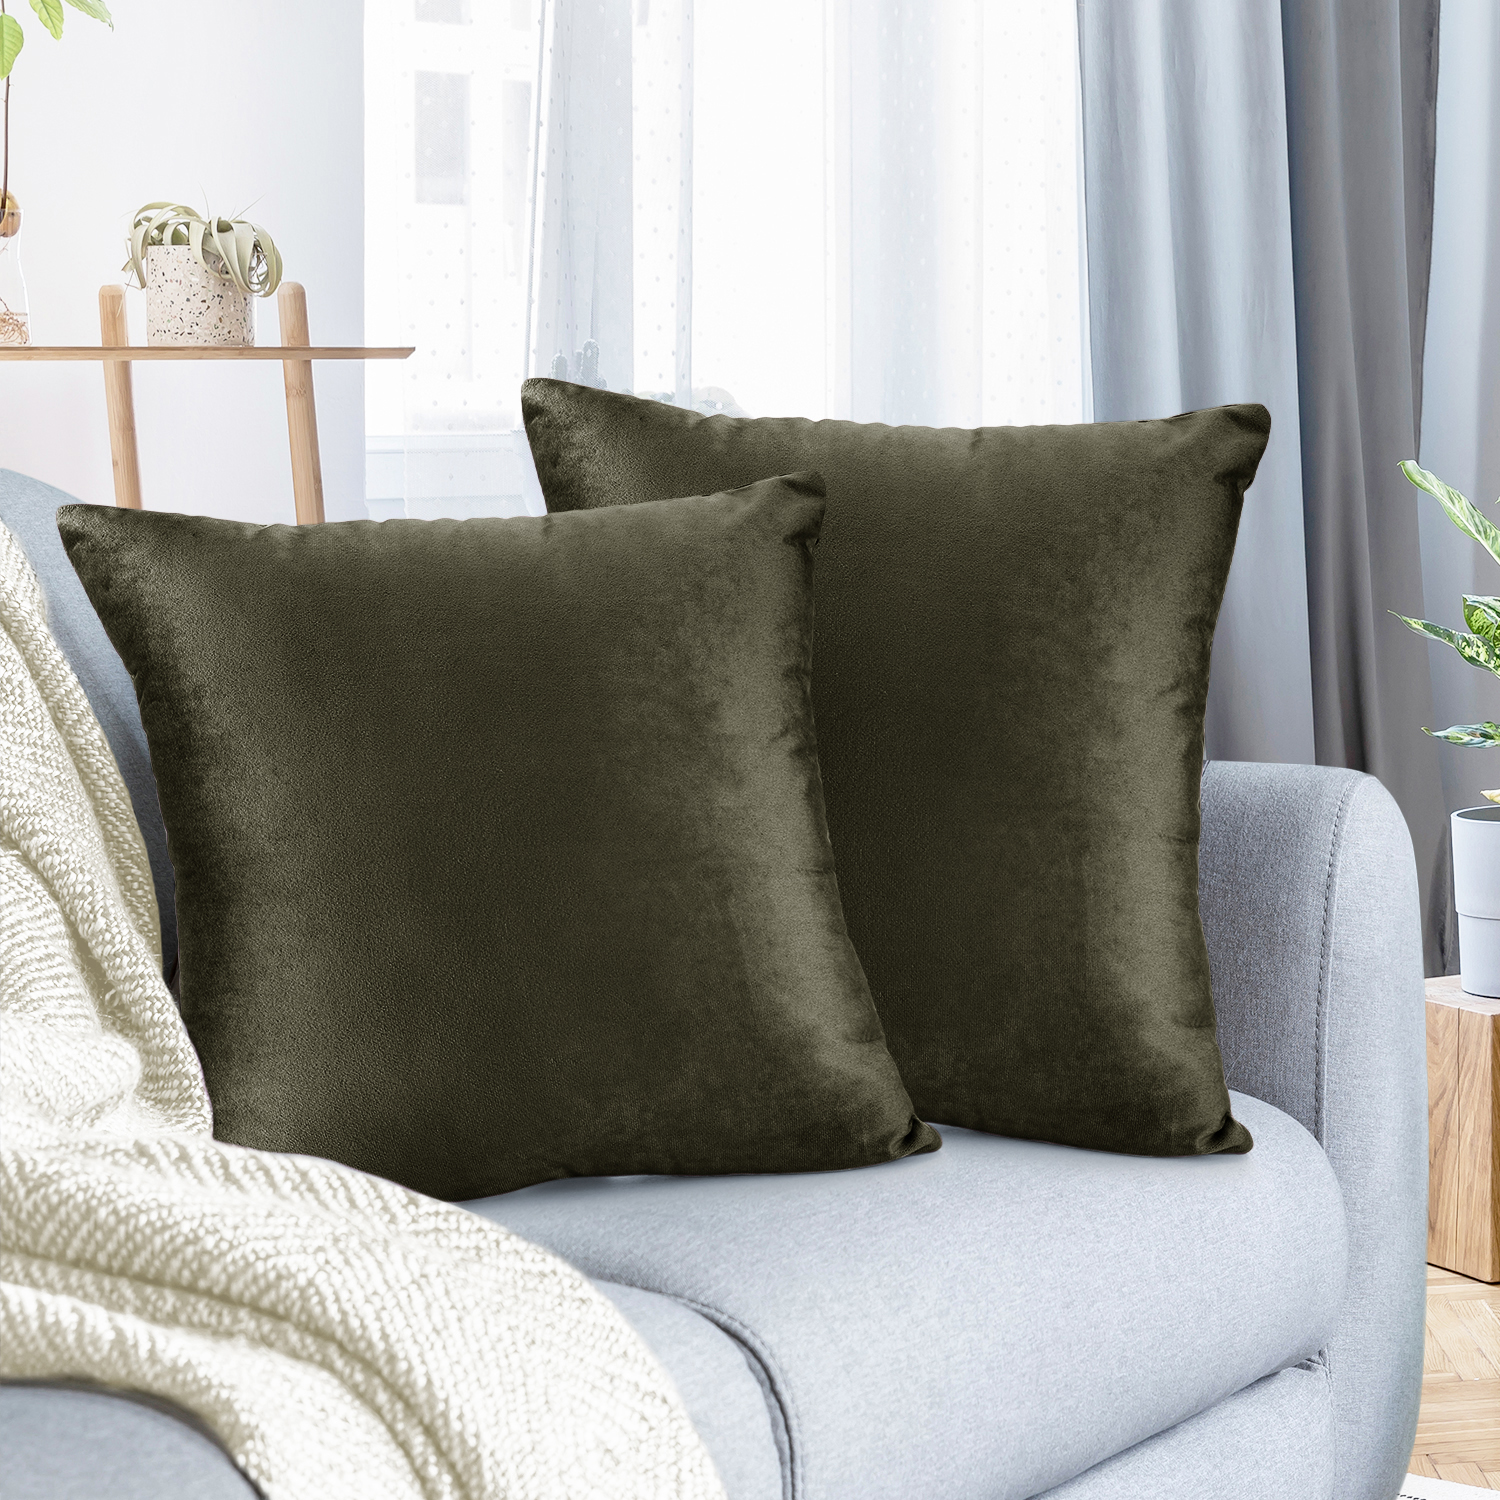 pack of 2 velvet throw pillow covers decorative soft square cushion cover 26 x 26